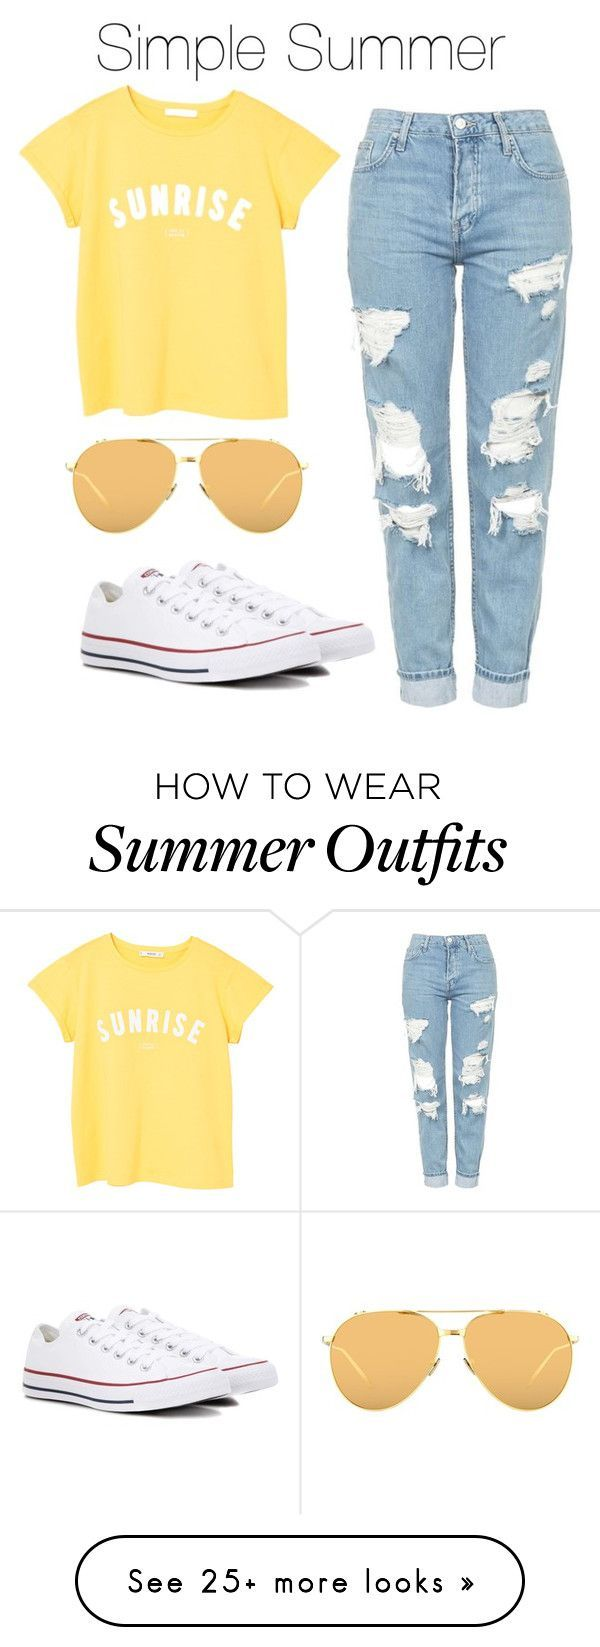 Simple Summer Outfit By Bekahlaw04 On Polyvore Featuring Topshop Mango Converse And Linda Farrow